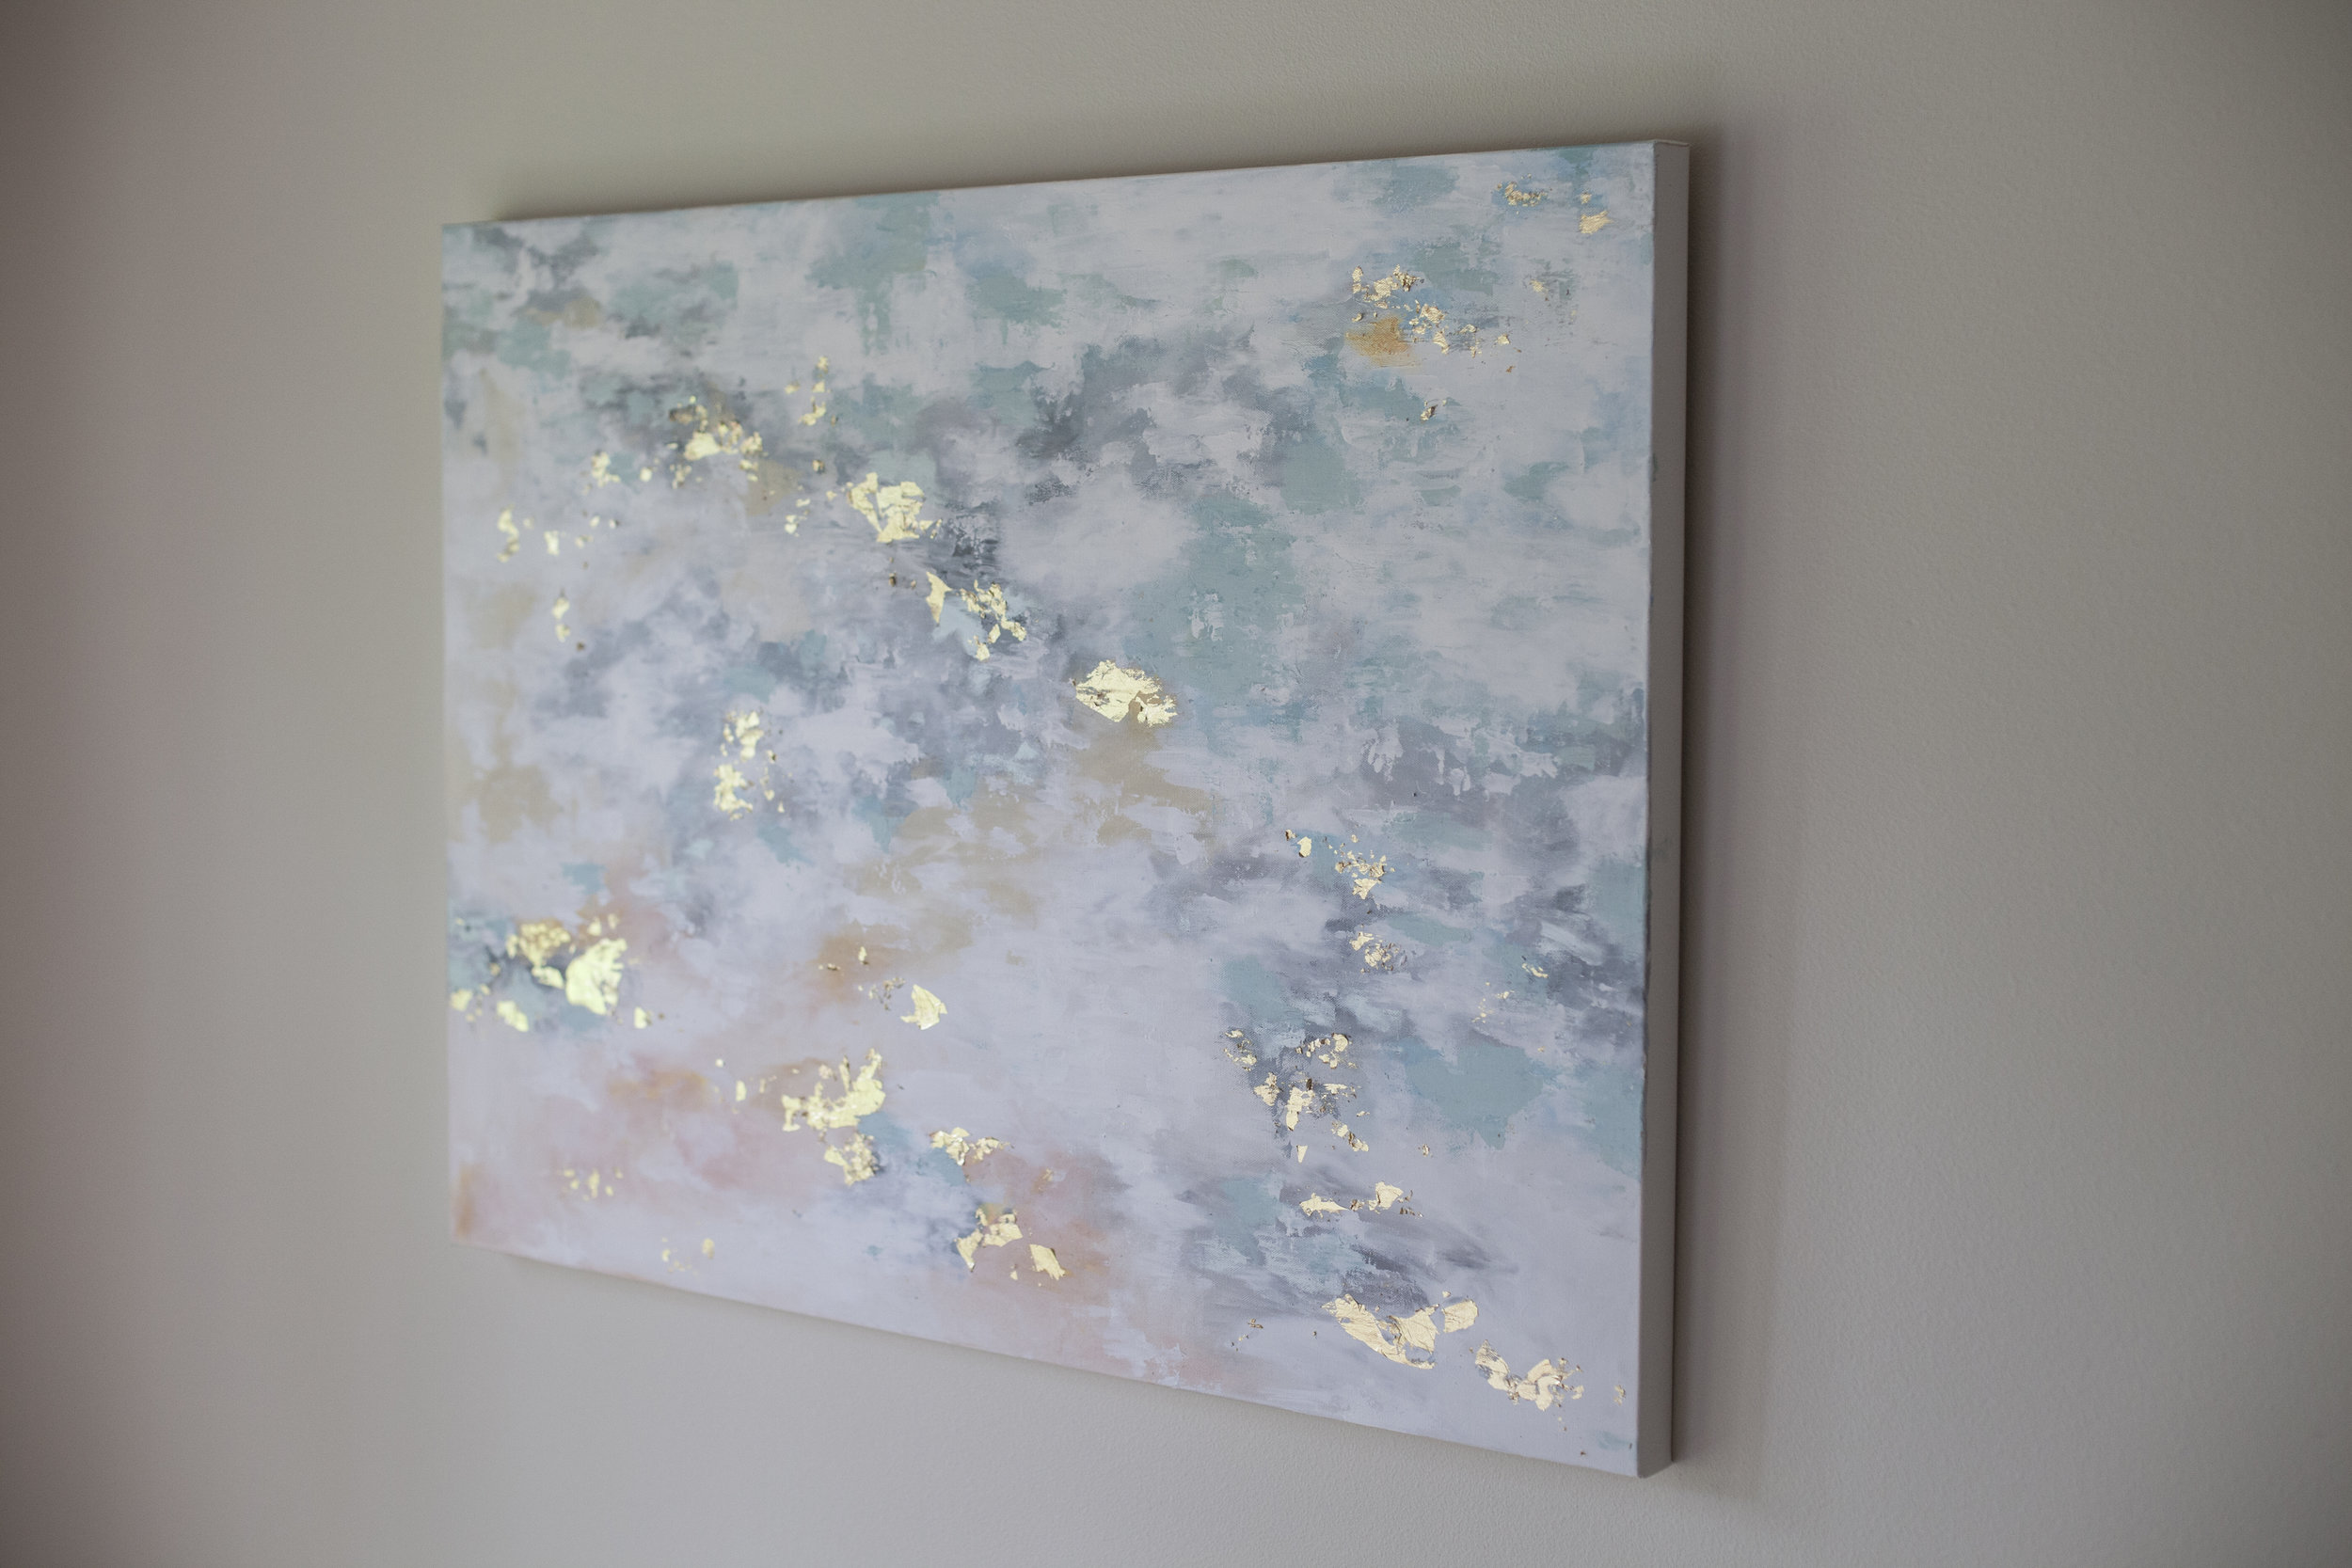 Original 30x40 painting, acrylic and gold leaf on canvas.